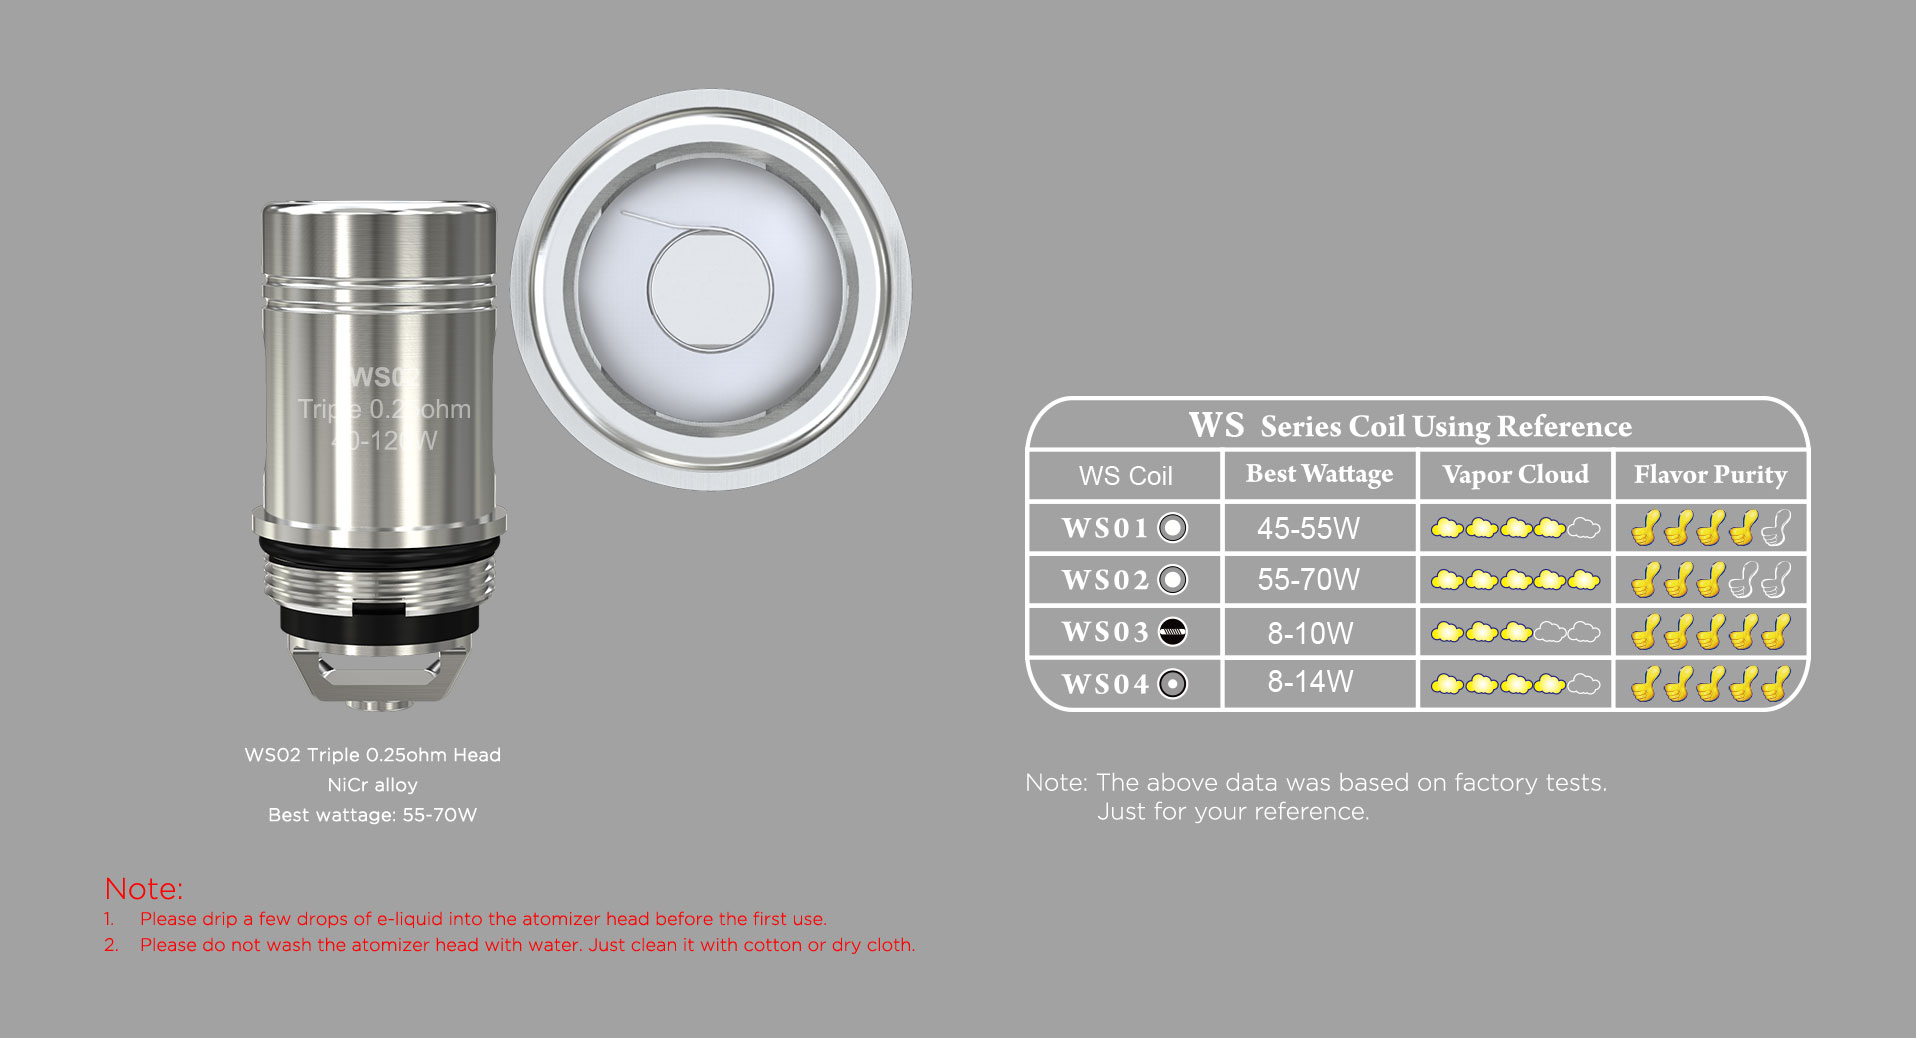 WS02 Triple 0.25ohm Head